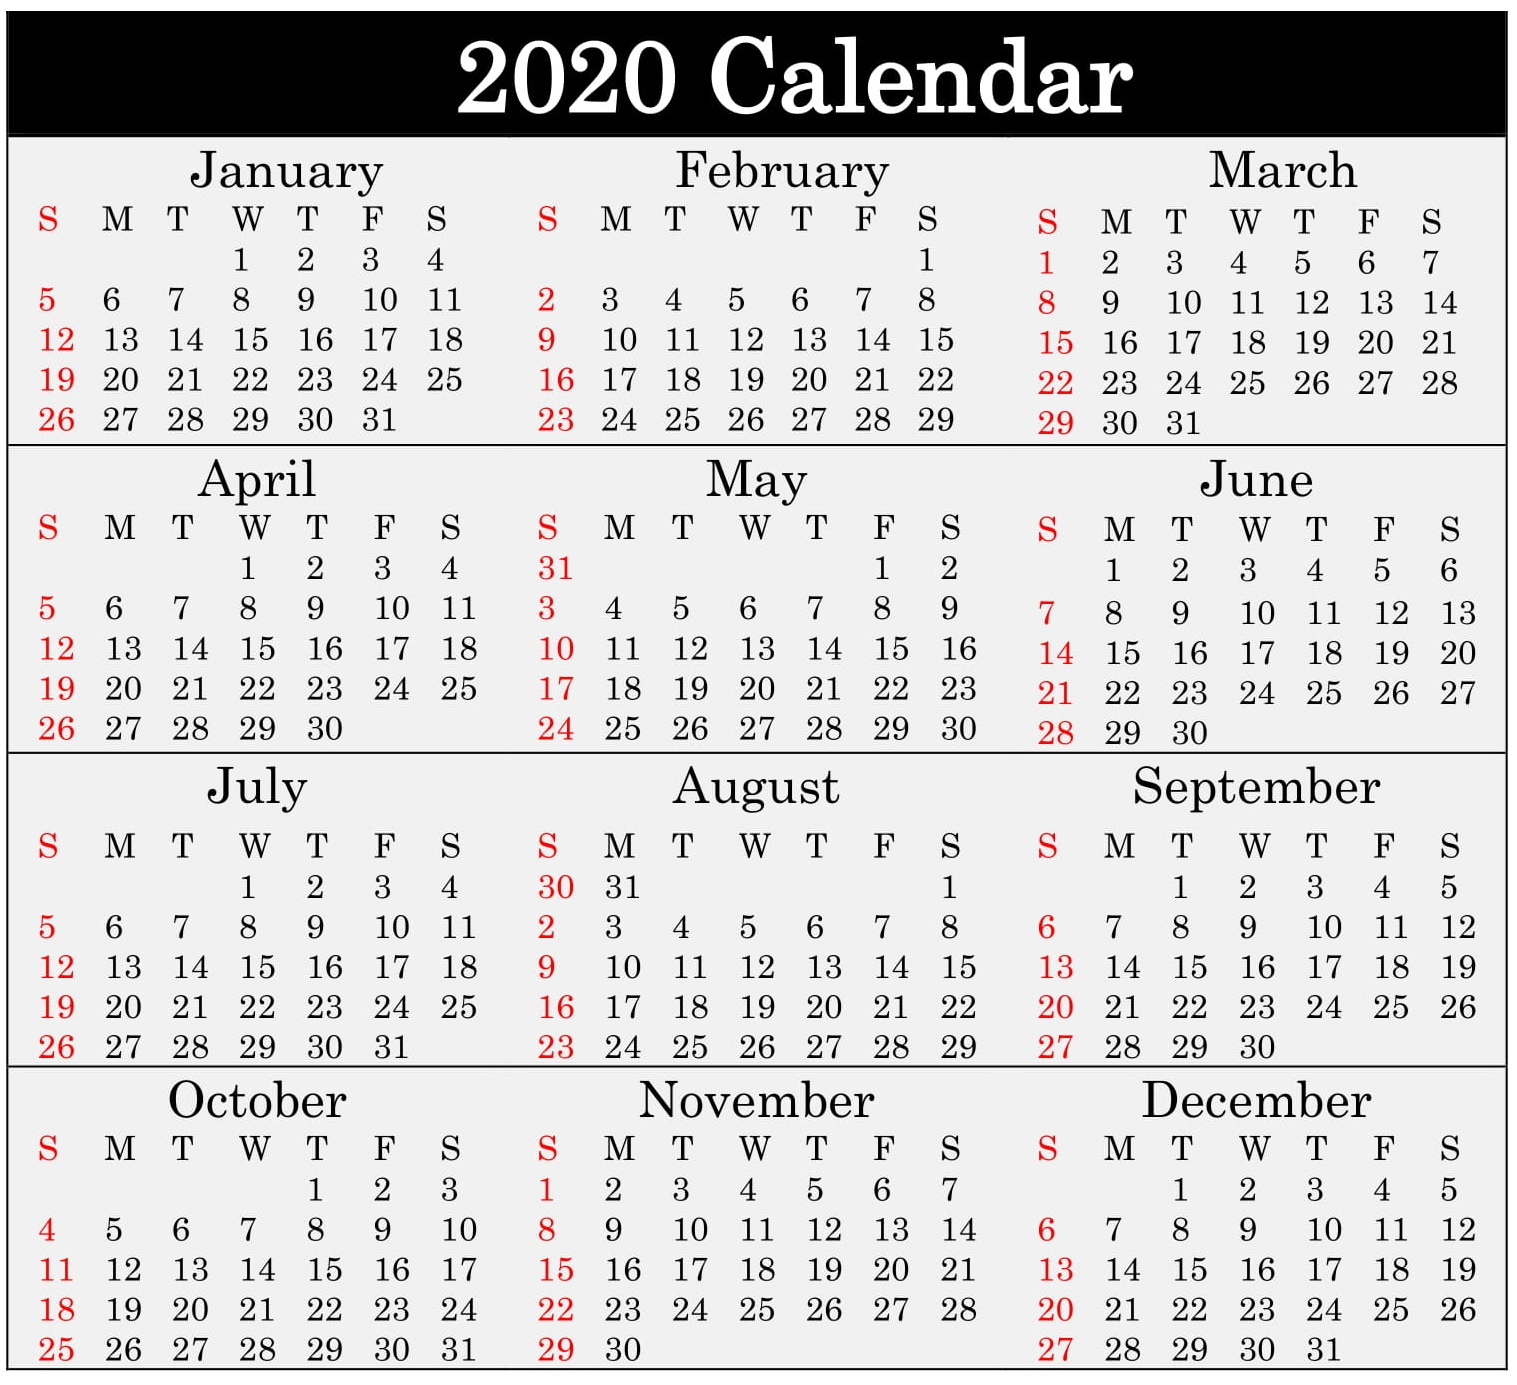 Printable 2020 Calendar Word Document  Latest Printable throughout Julian Date Calendar For 2020